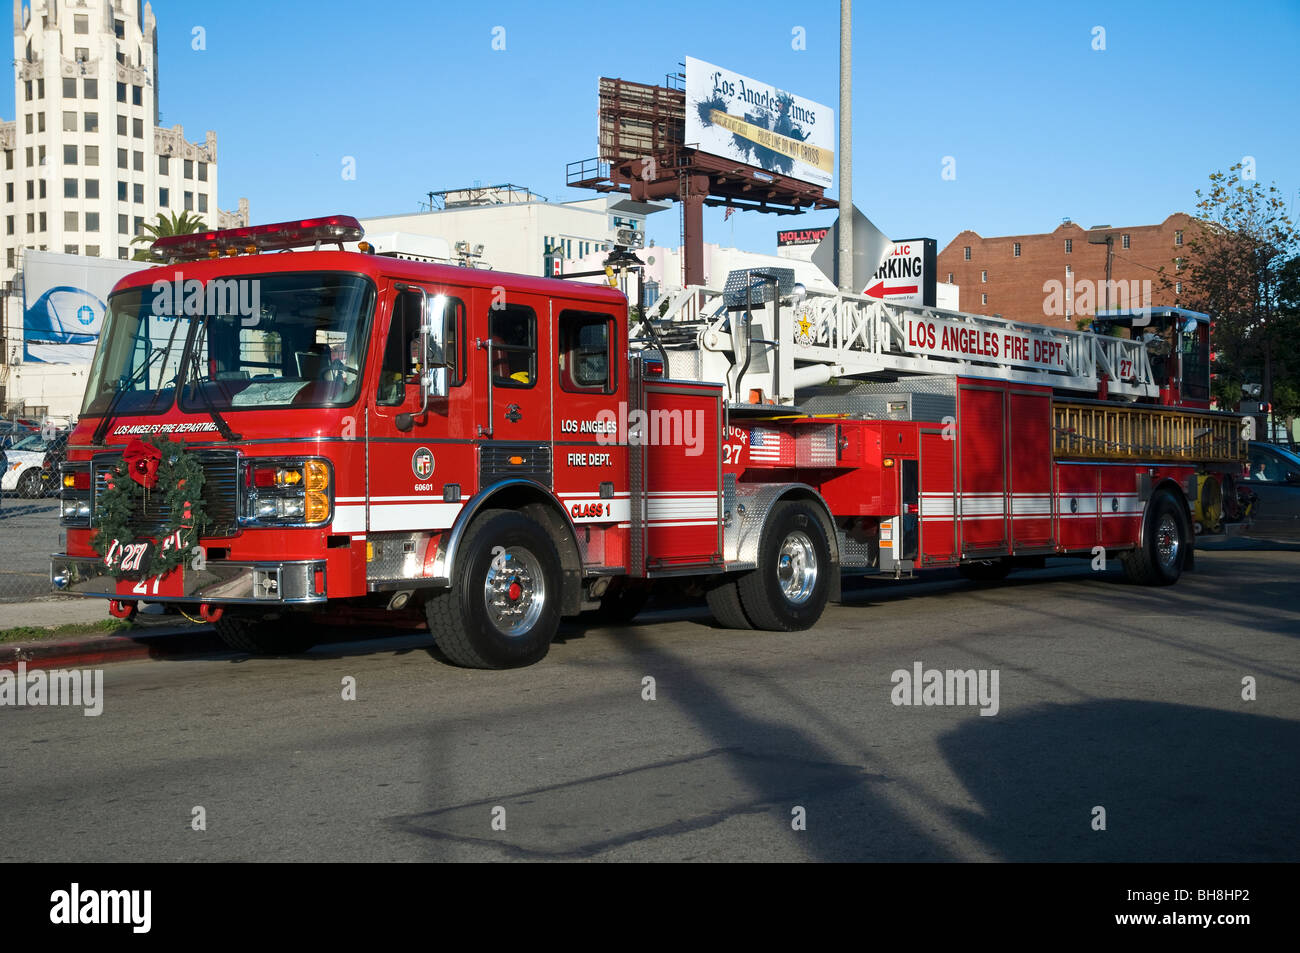 Parked fire truck stock photos parked fire truck stock images alamy parked fire truck los angeles fire department hollywood los angeles california freerunsca Choice Image